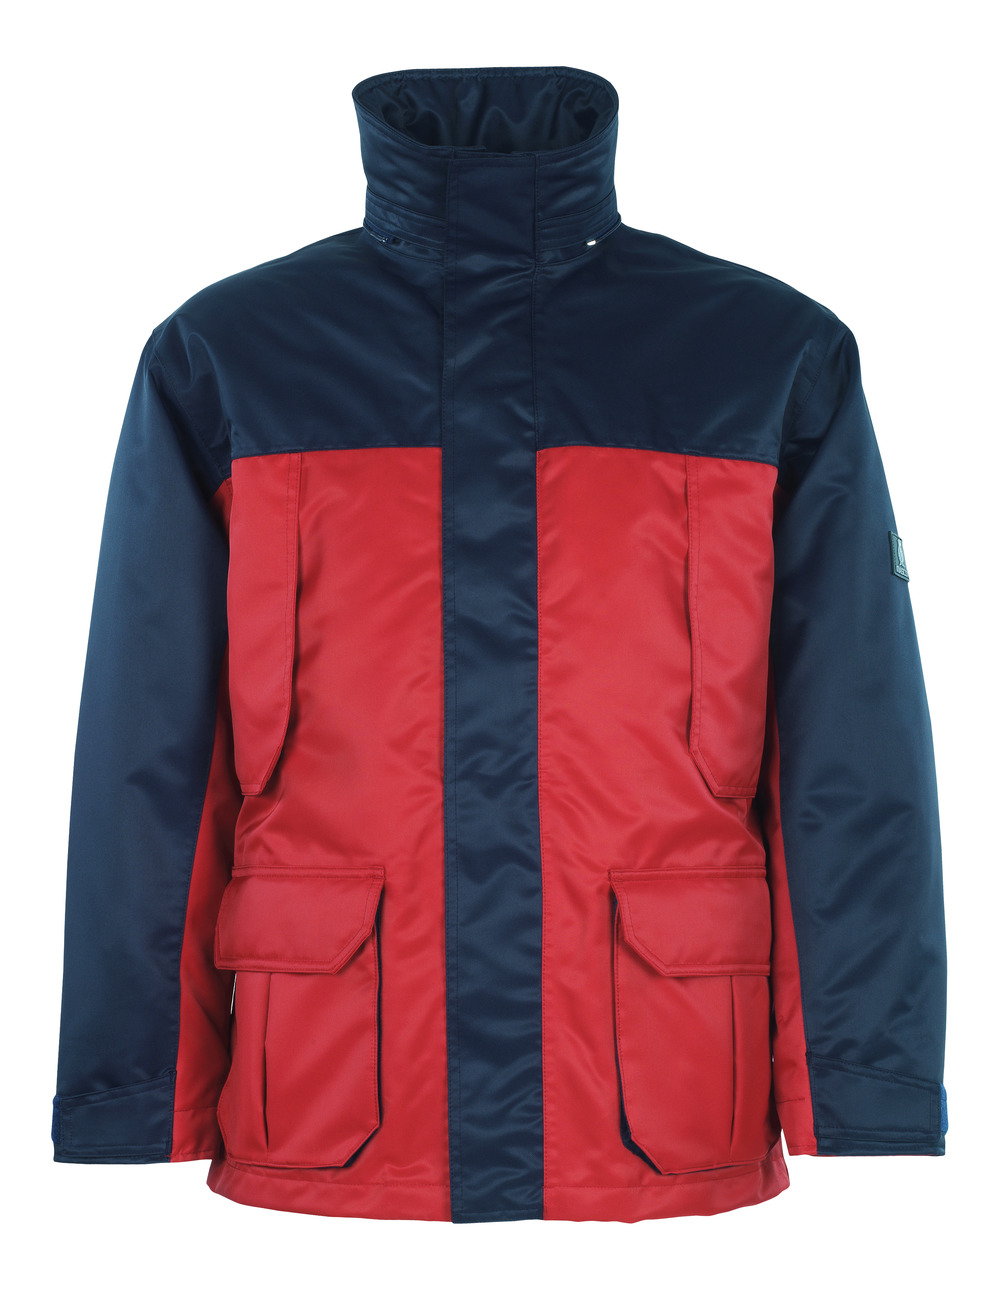 00930-650-21 Parka Jacket - red/navy